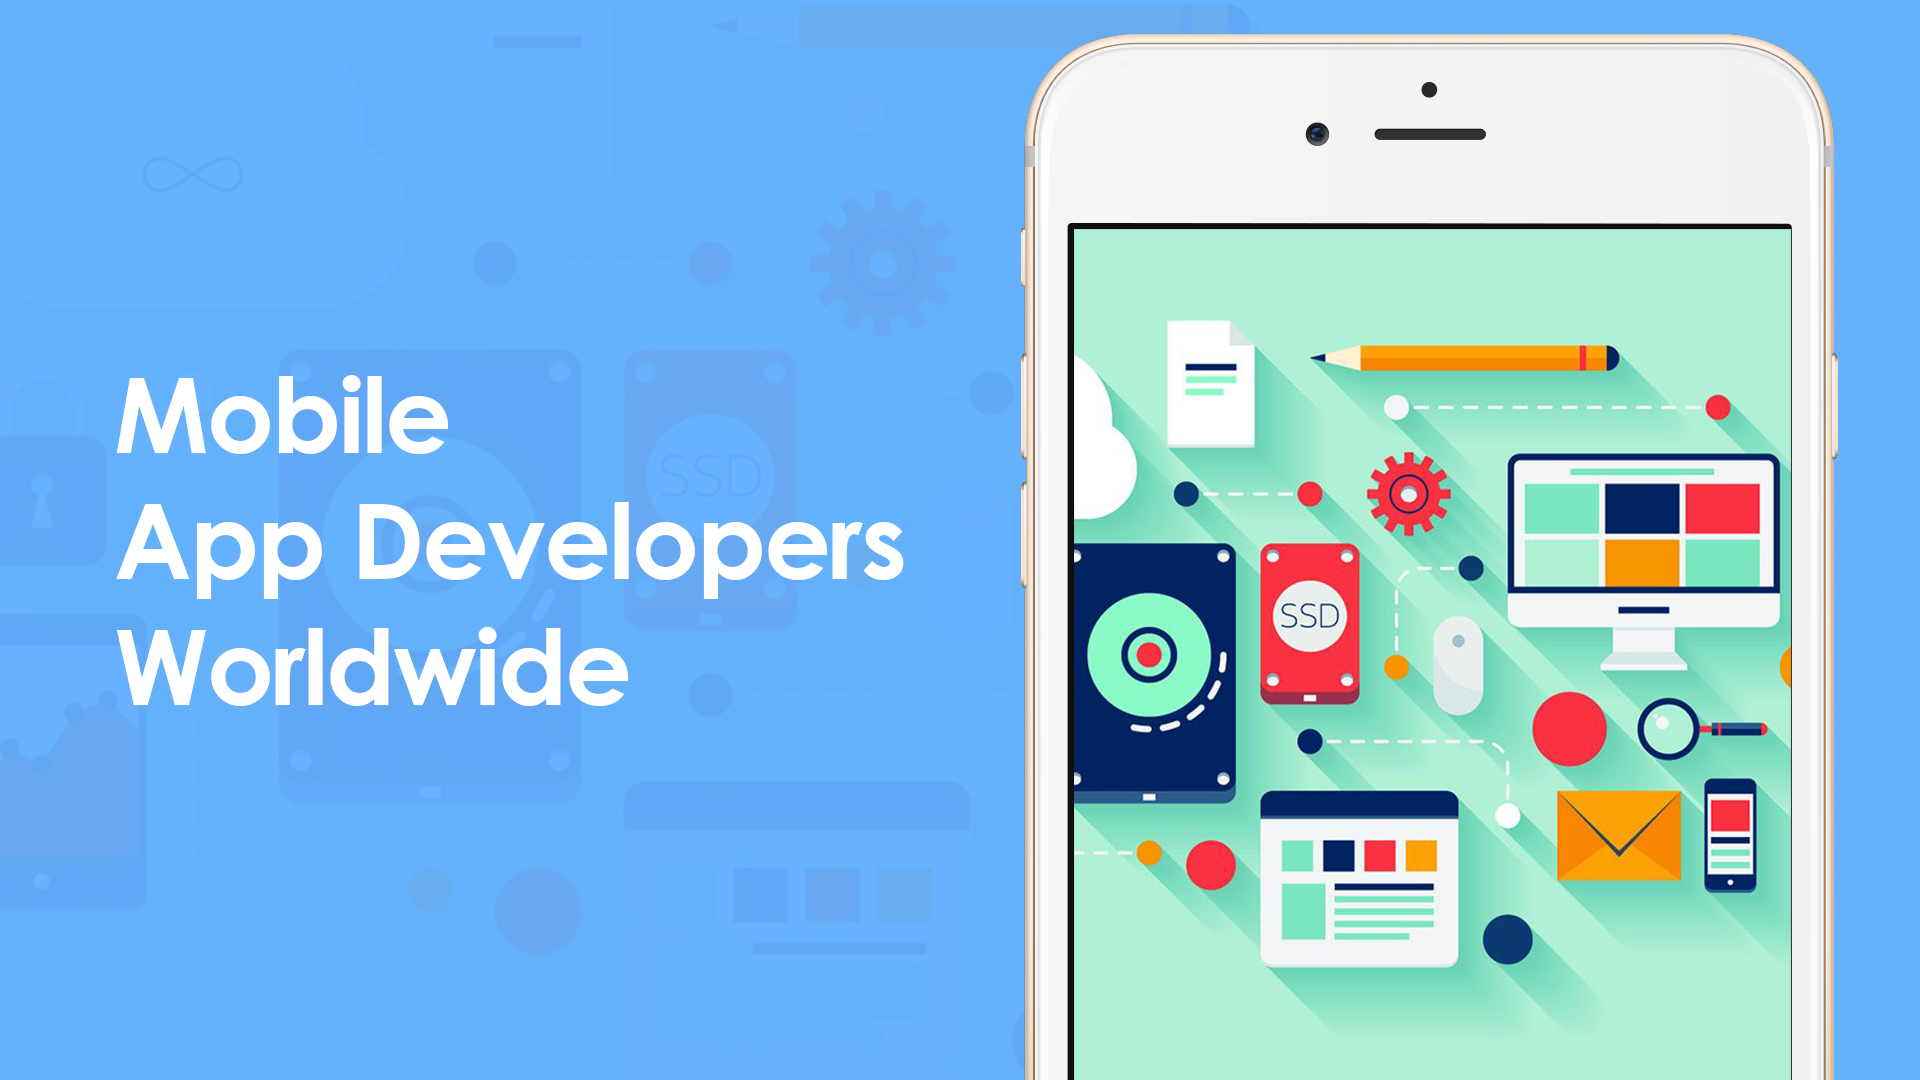 The latest trends from app developers